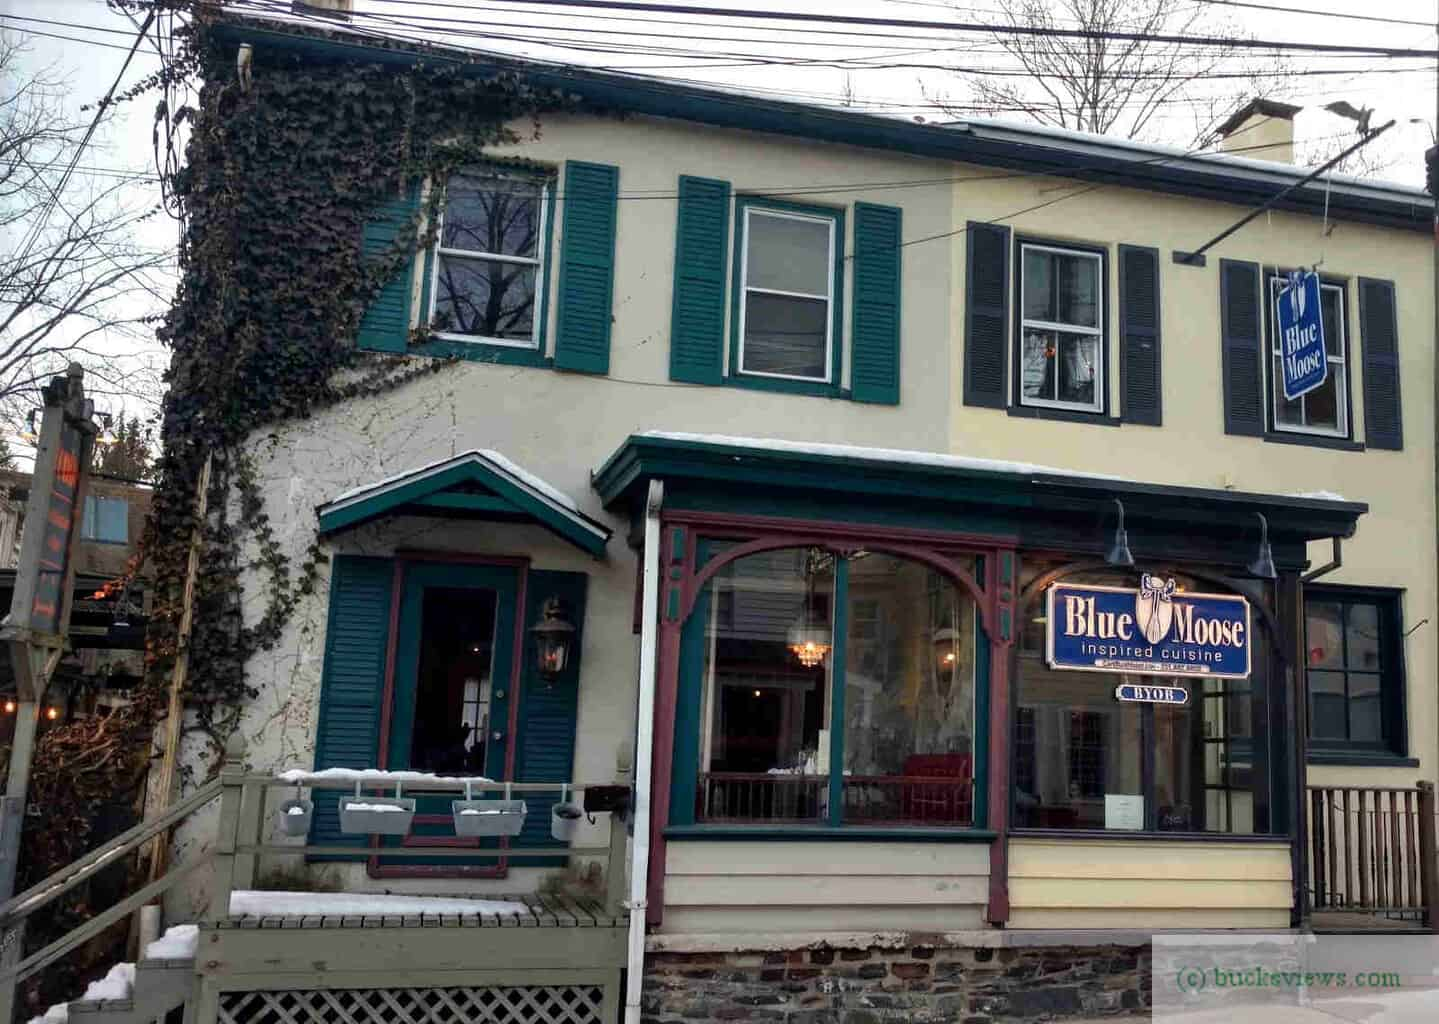 The Blue Moose Restaurant in New Hope